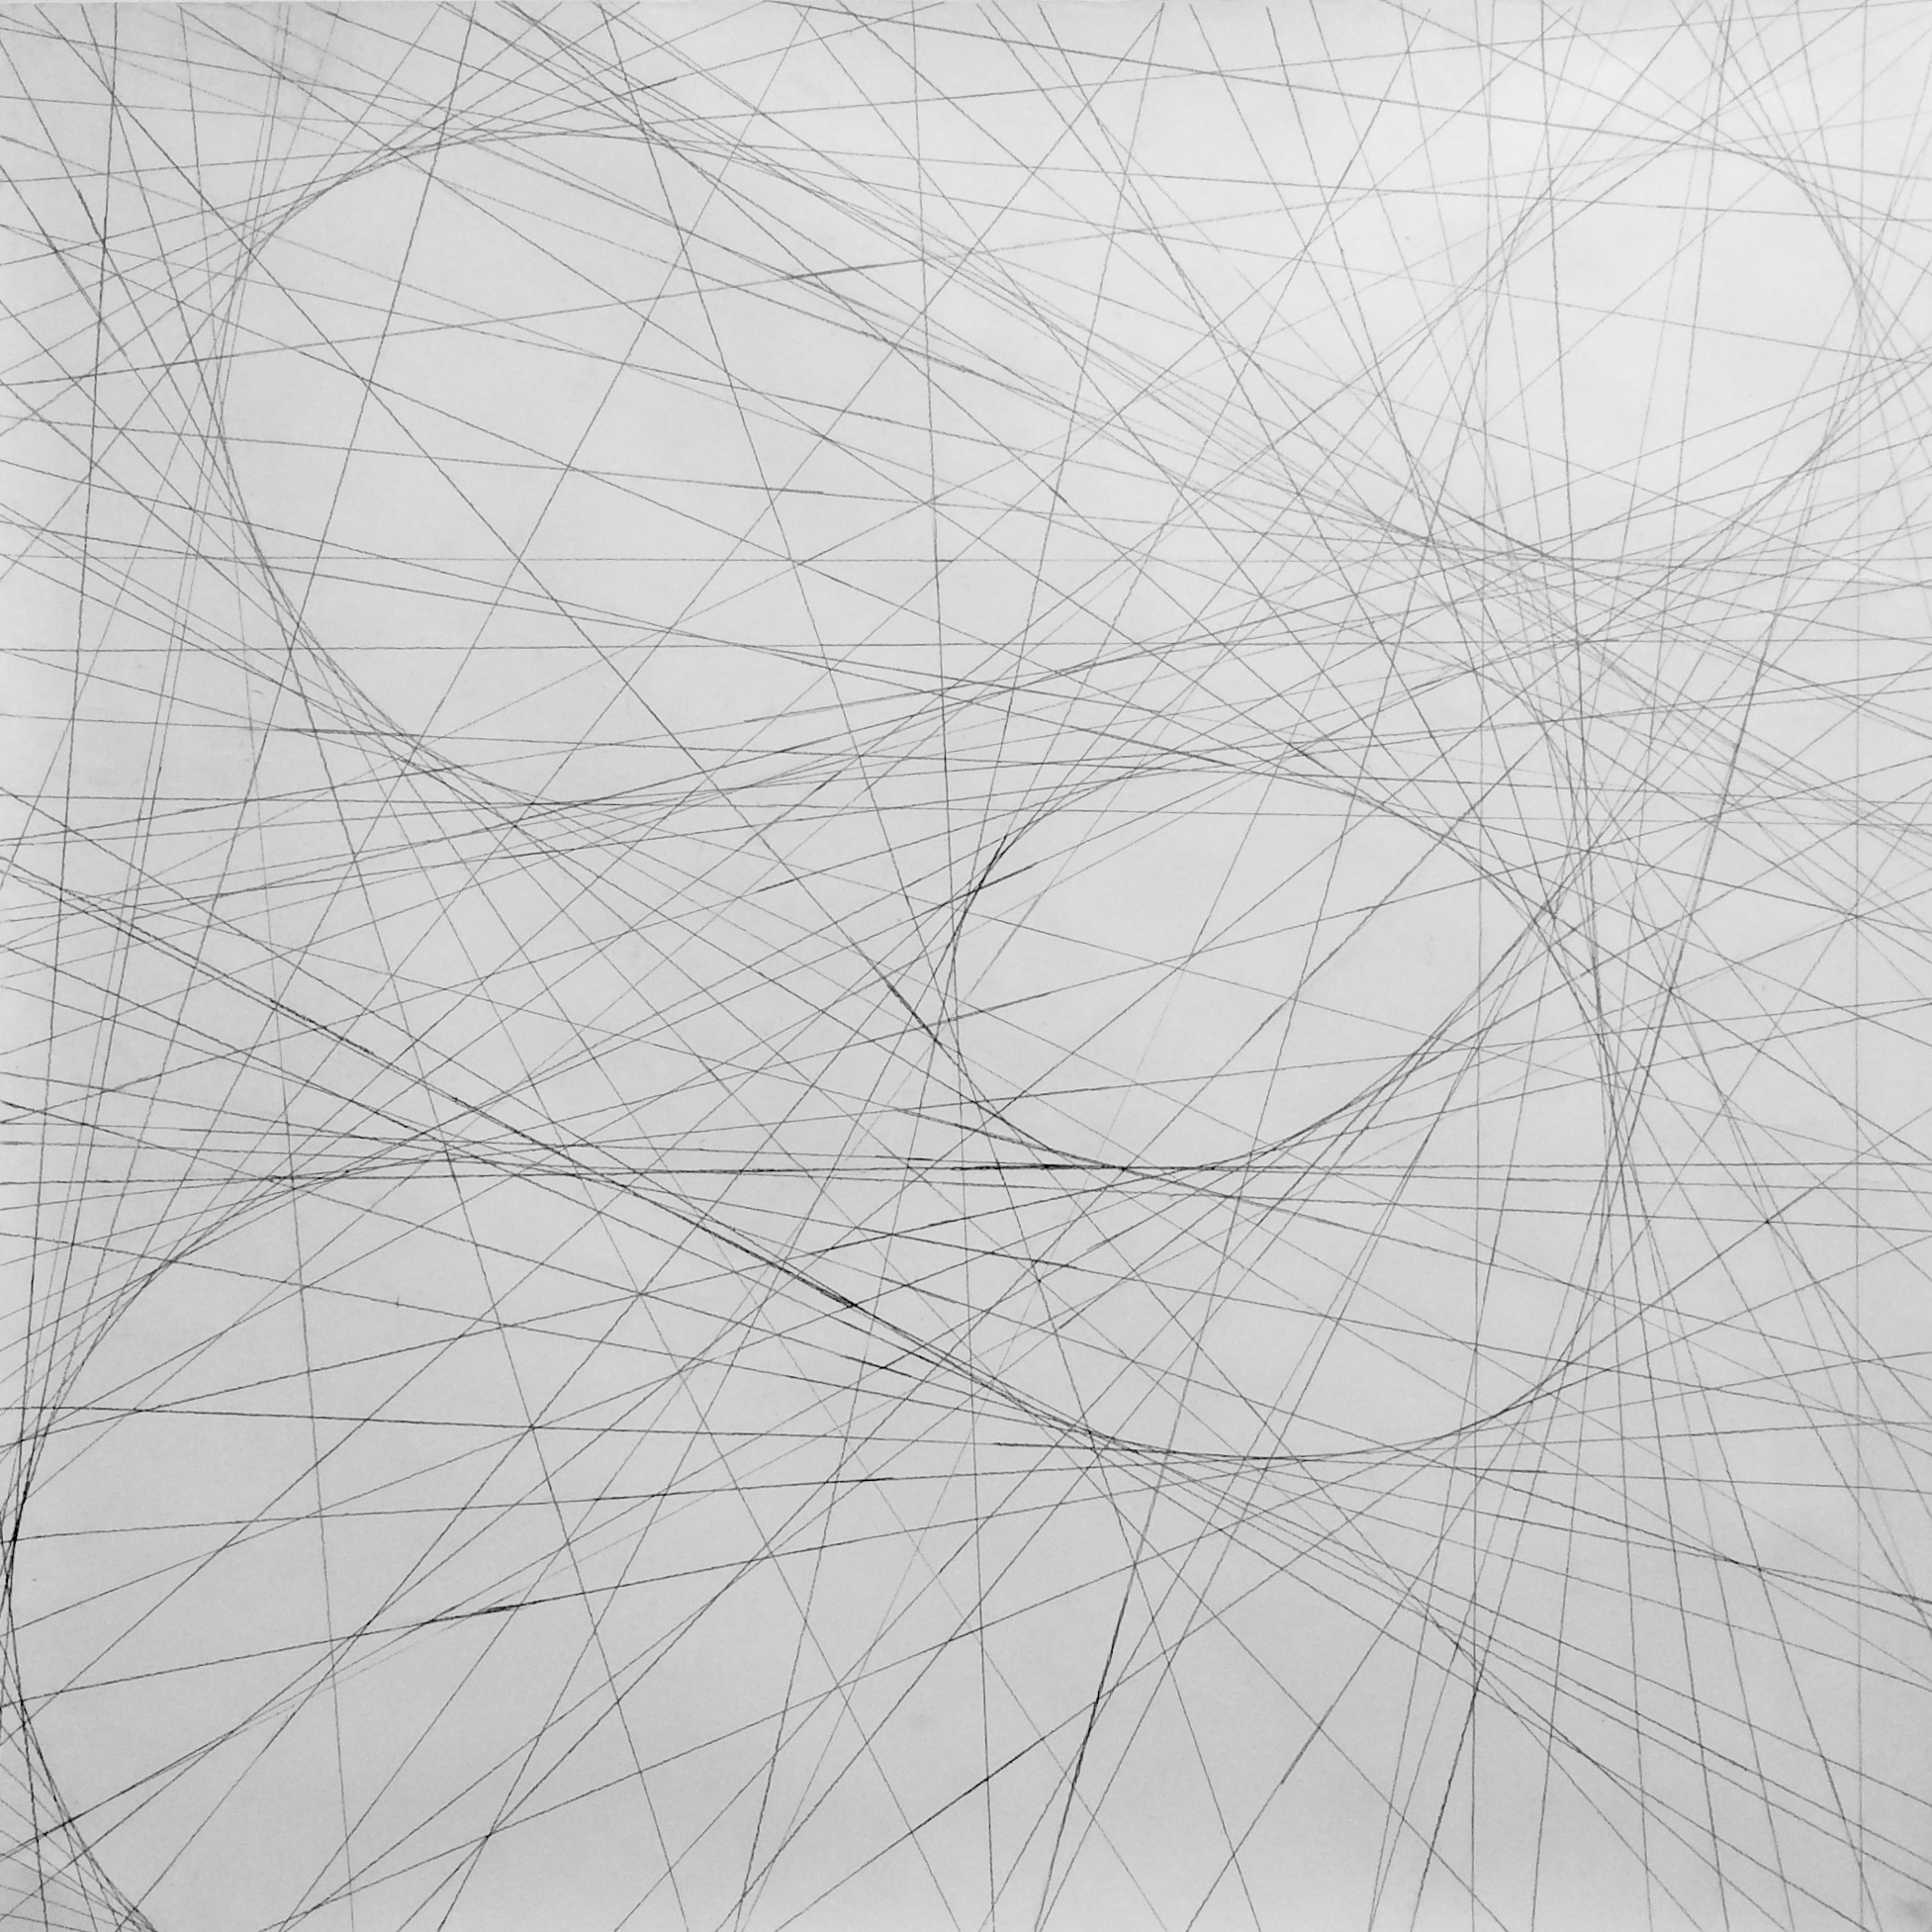 Straight Lines, Graphite on Paper, 2015